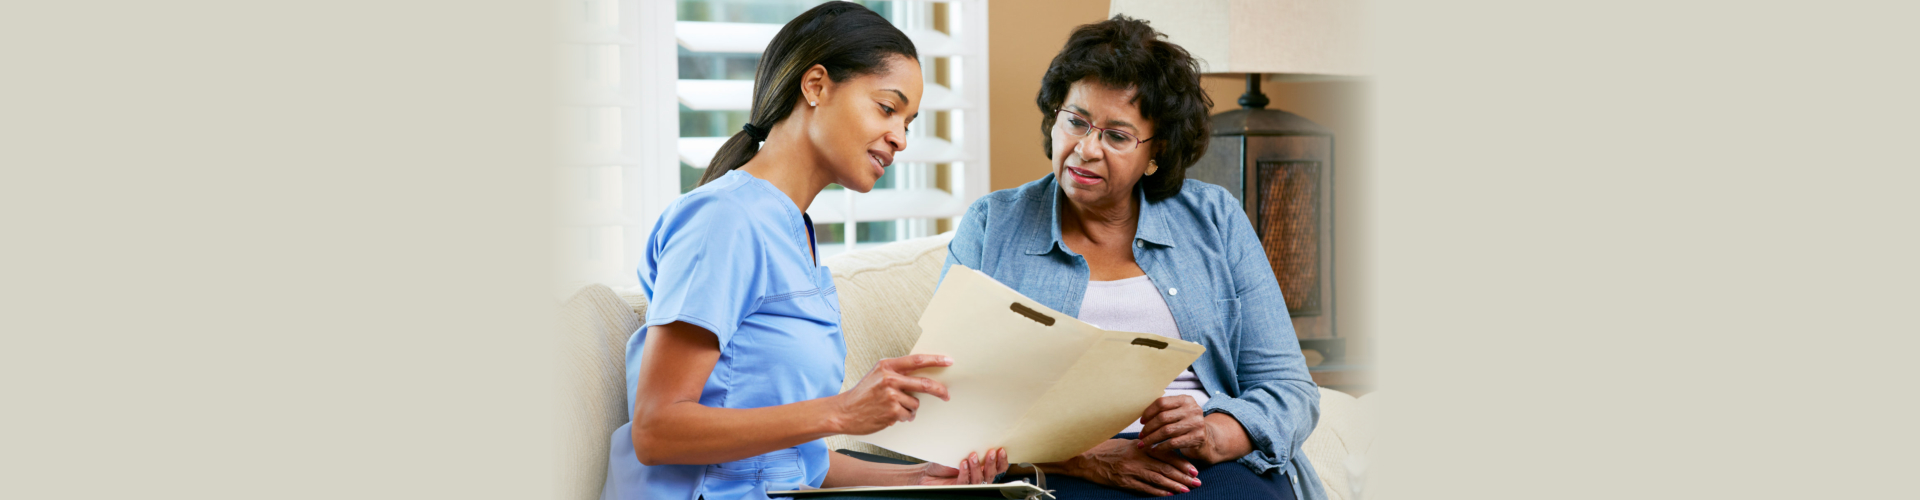 Nurse Discussing Records With Senior Female Patient During Home